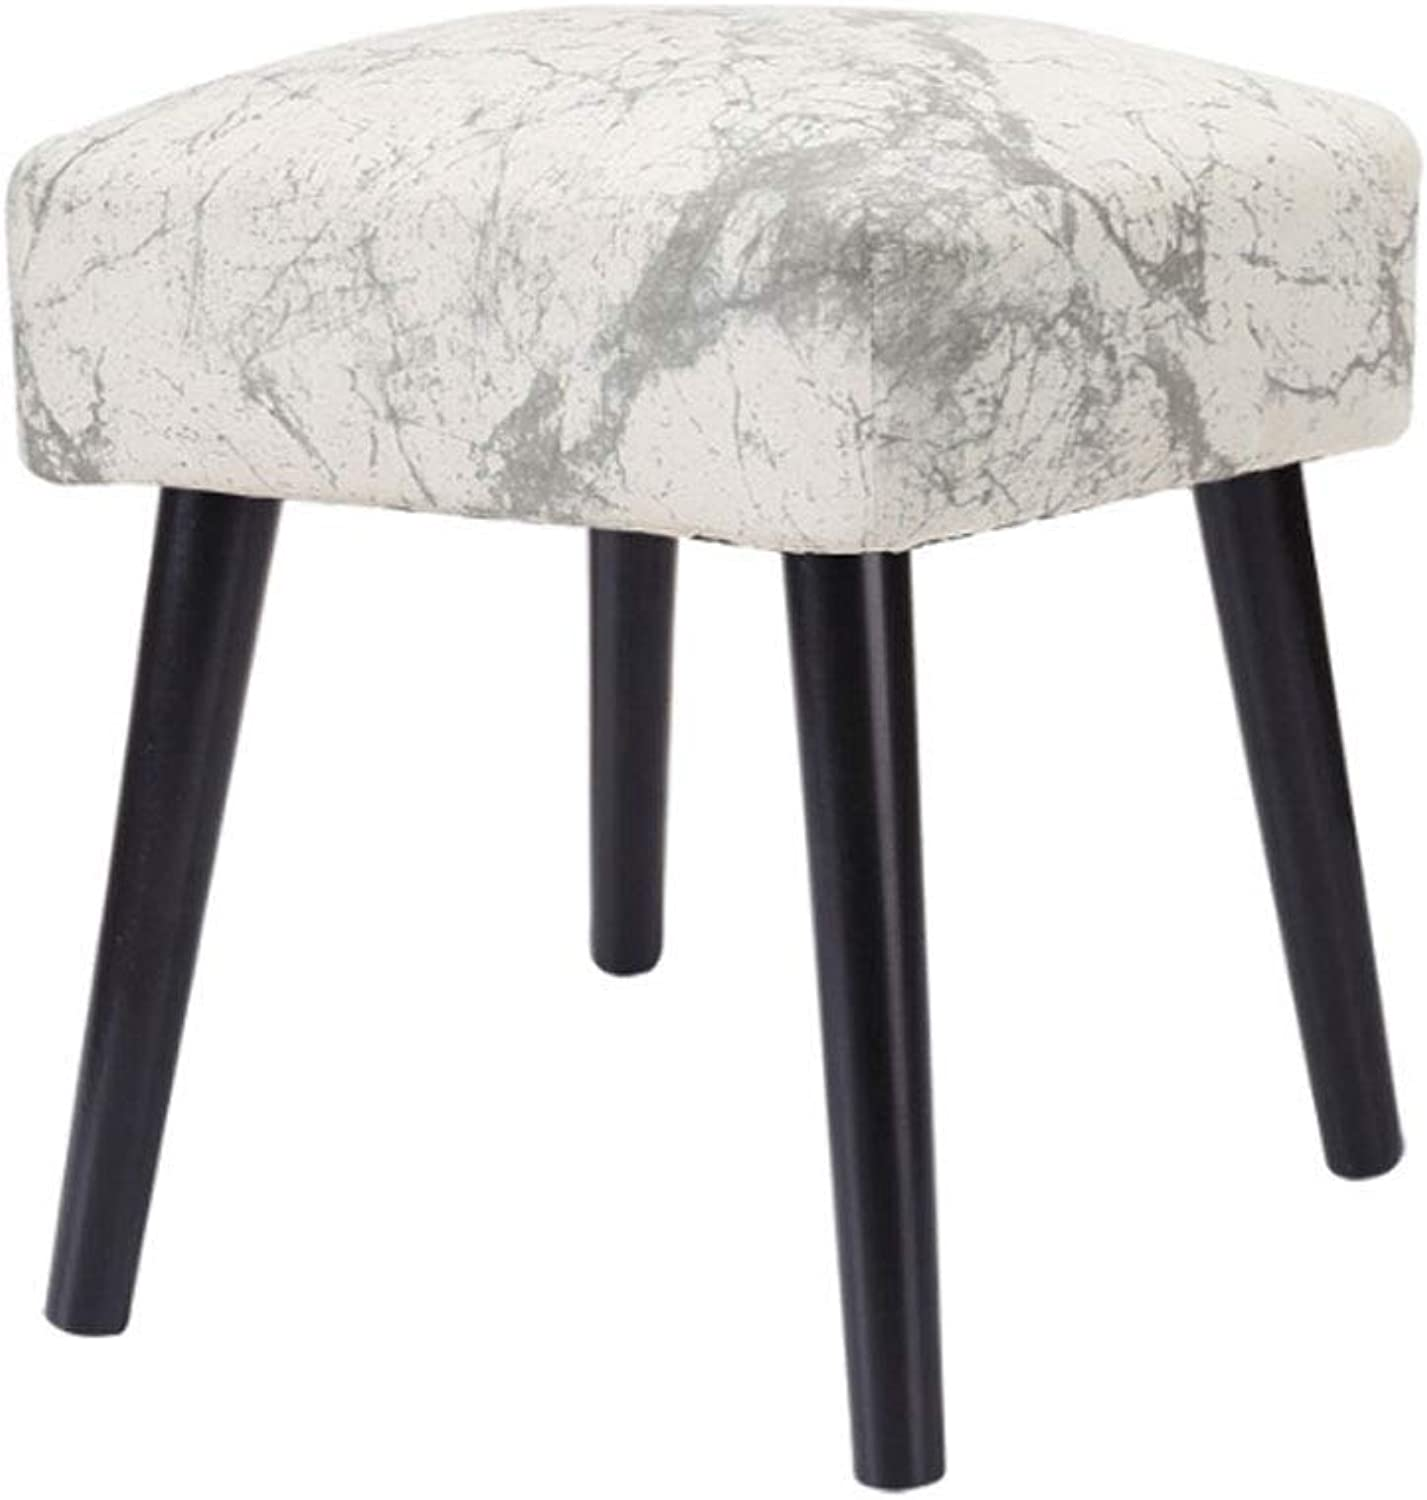 ZXW STOOLS- Solid Wood Stool Fabric Sofa Bench for shoes Bench (color   Marble, Size   32x32x40cm)